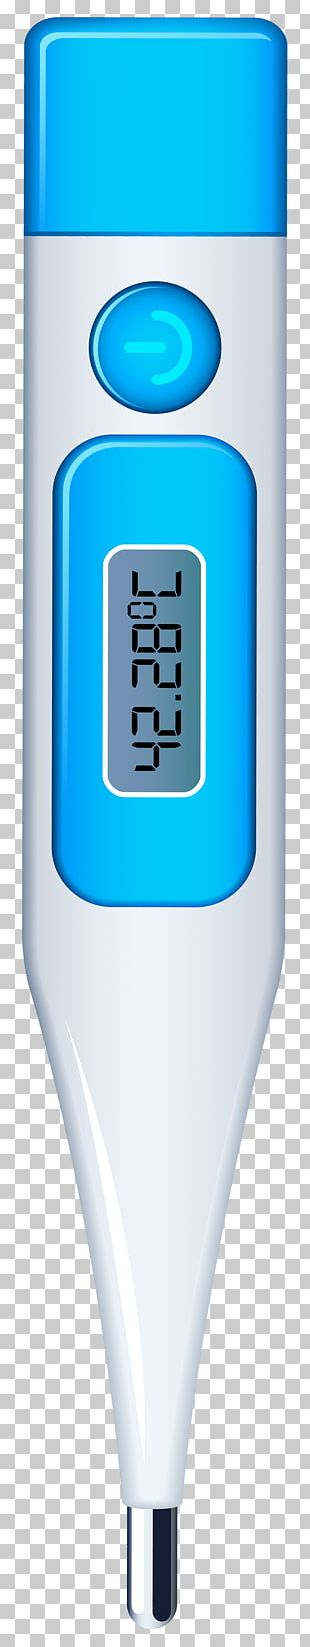 Medical Thermometers Computer Icons Atmospheric Thermometer PNG